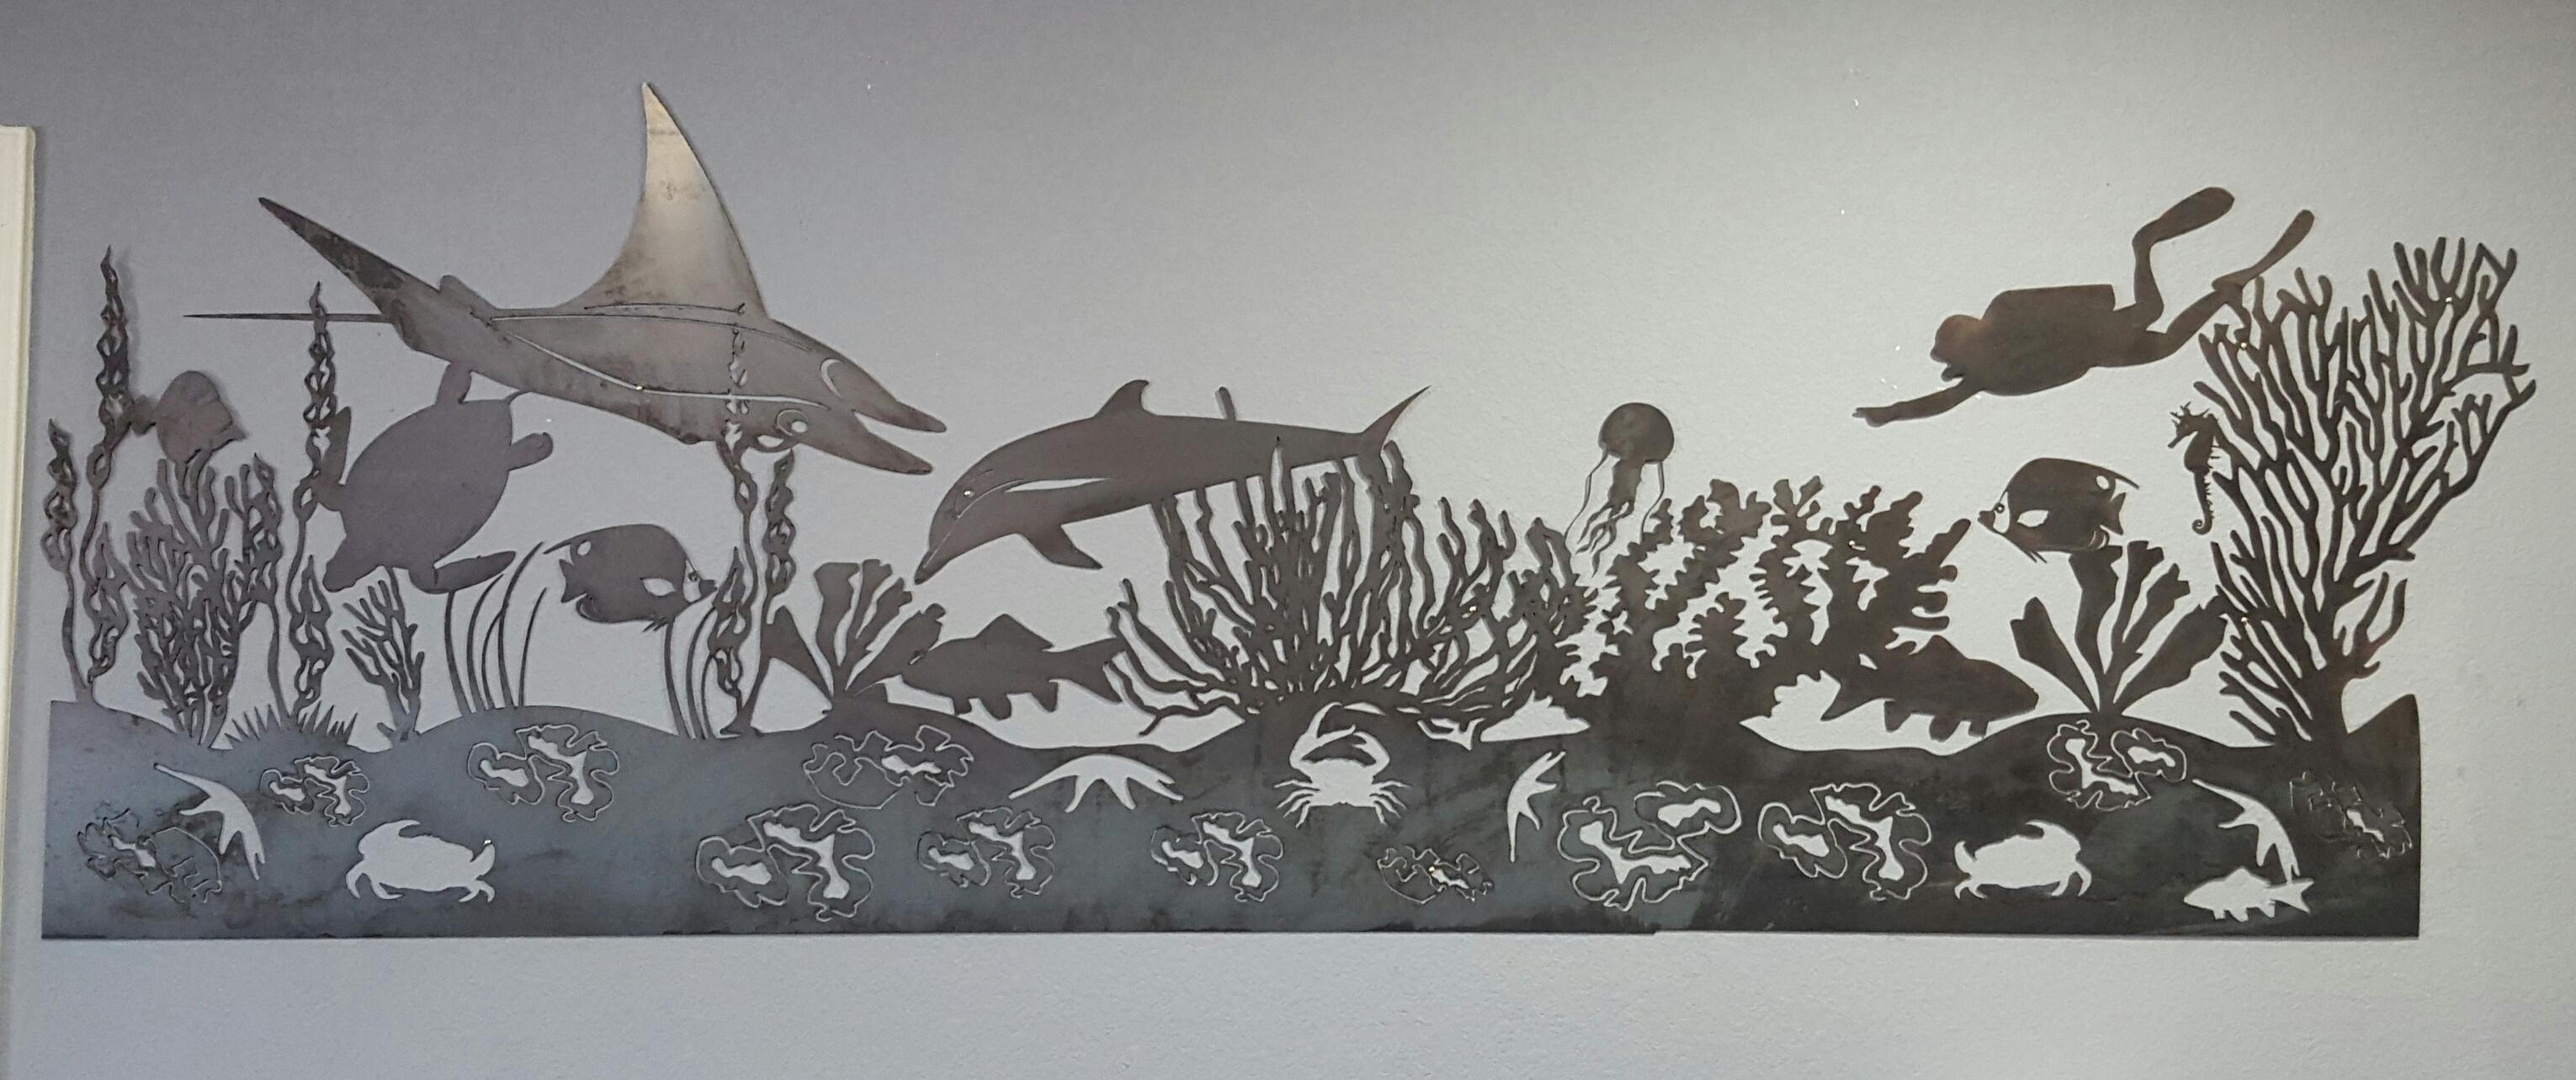 Sea Life Mural Metal Wall Art | Blue Collar Welding Llc With Dolphin Metal Wall Art (View 11 of 20)